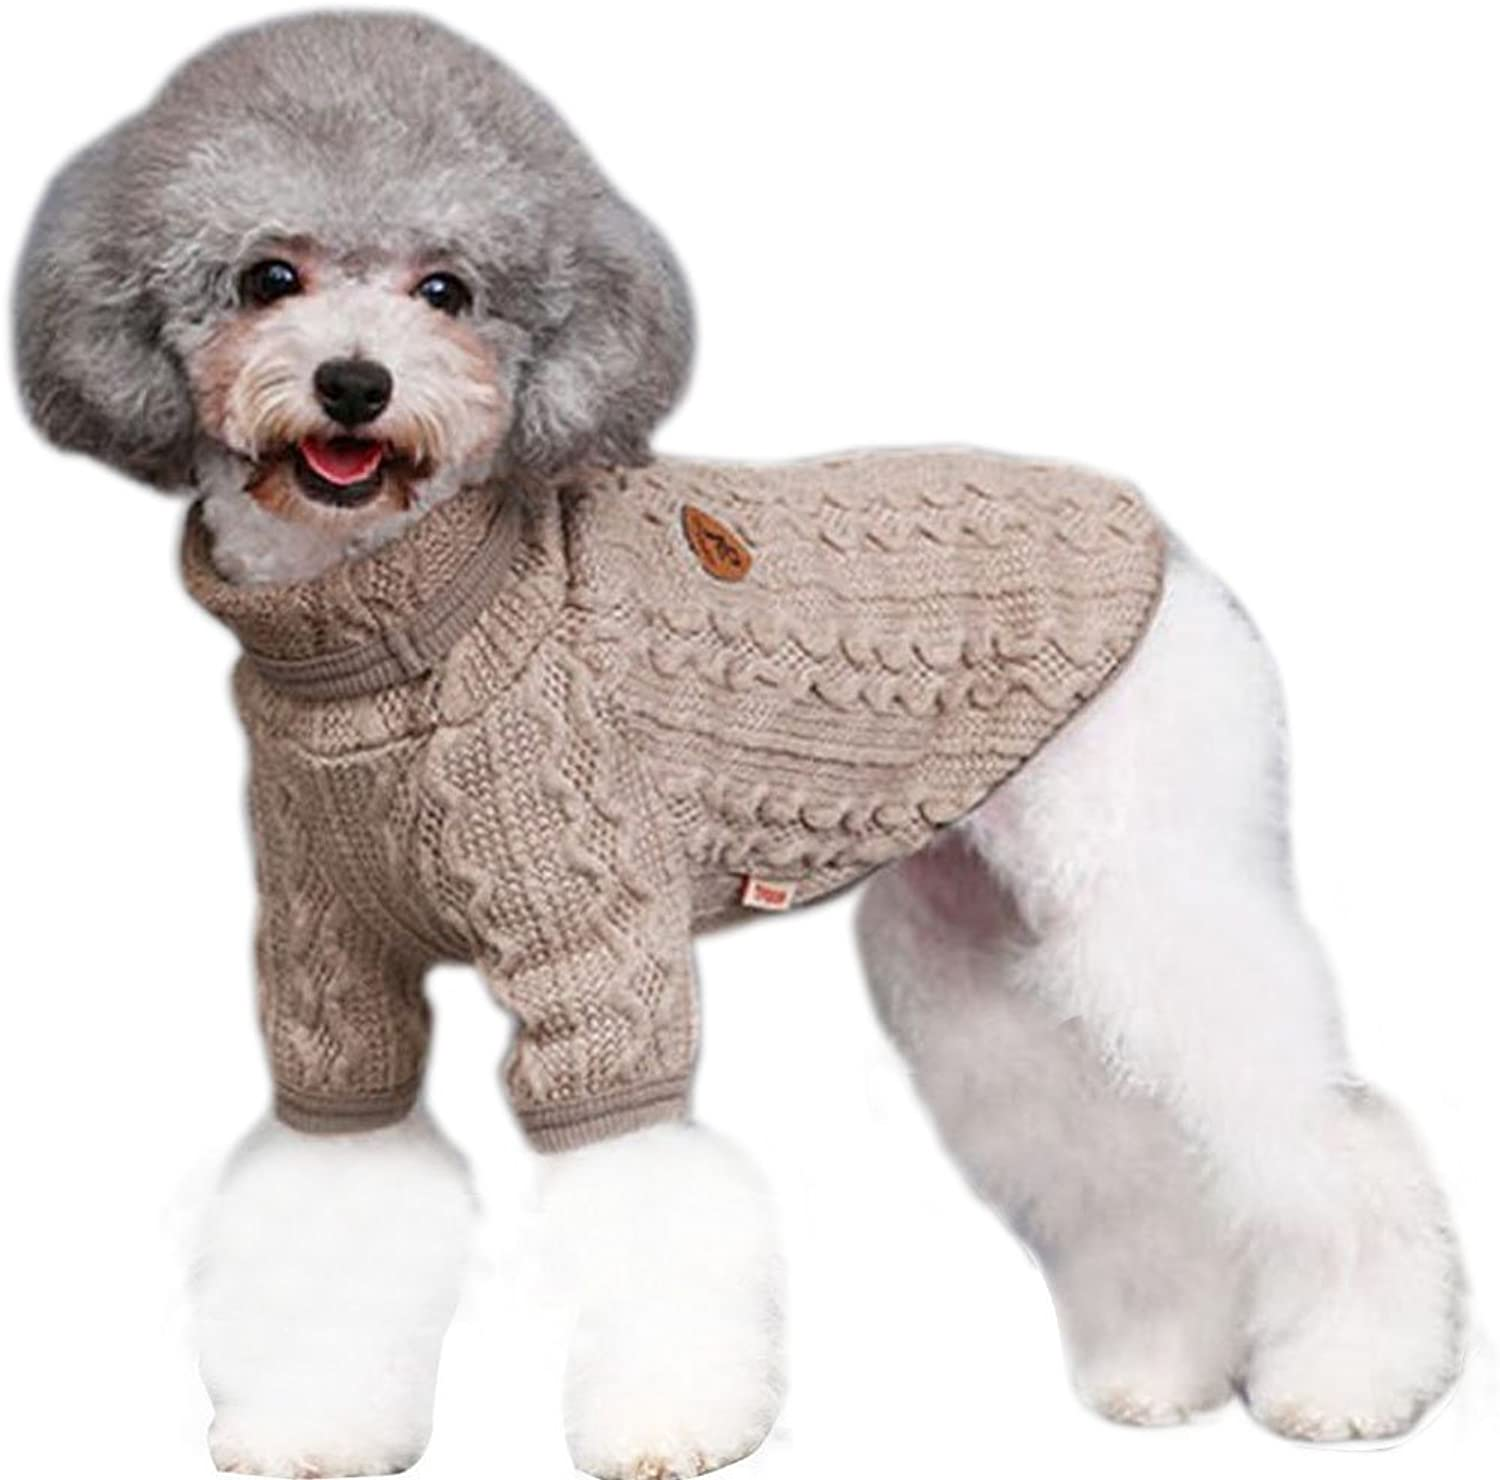 Bolbove Classic Cable Knit Turtleneck Sweater Small Dogs & Cats Knitwear Cold Weather Outfit (Large, Beige)